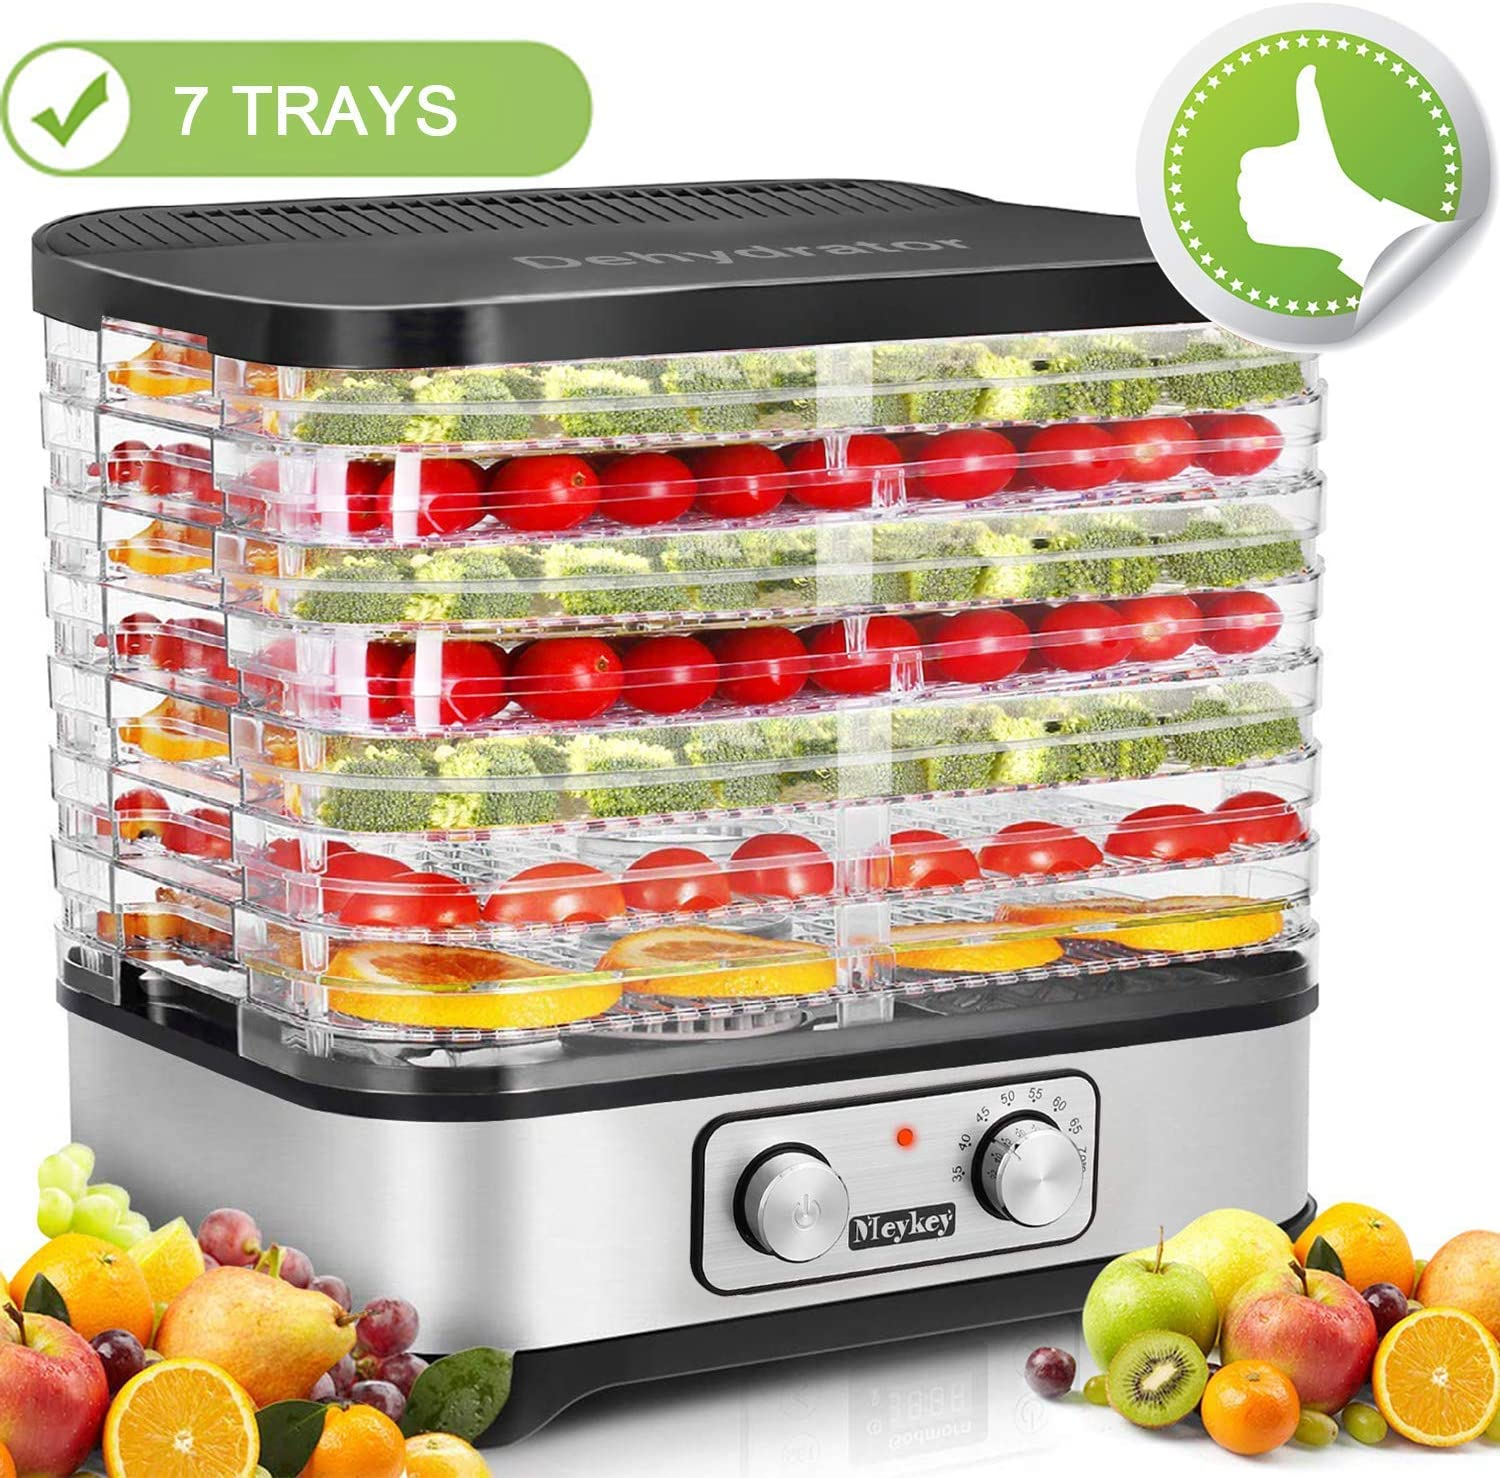 Food Dehydrator Machine, Jerky Dehydrators with 7-Tray, Perfect for Beef Jerky, Herbs, Fruit Leather